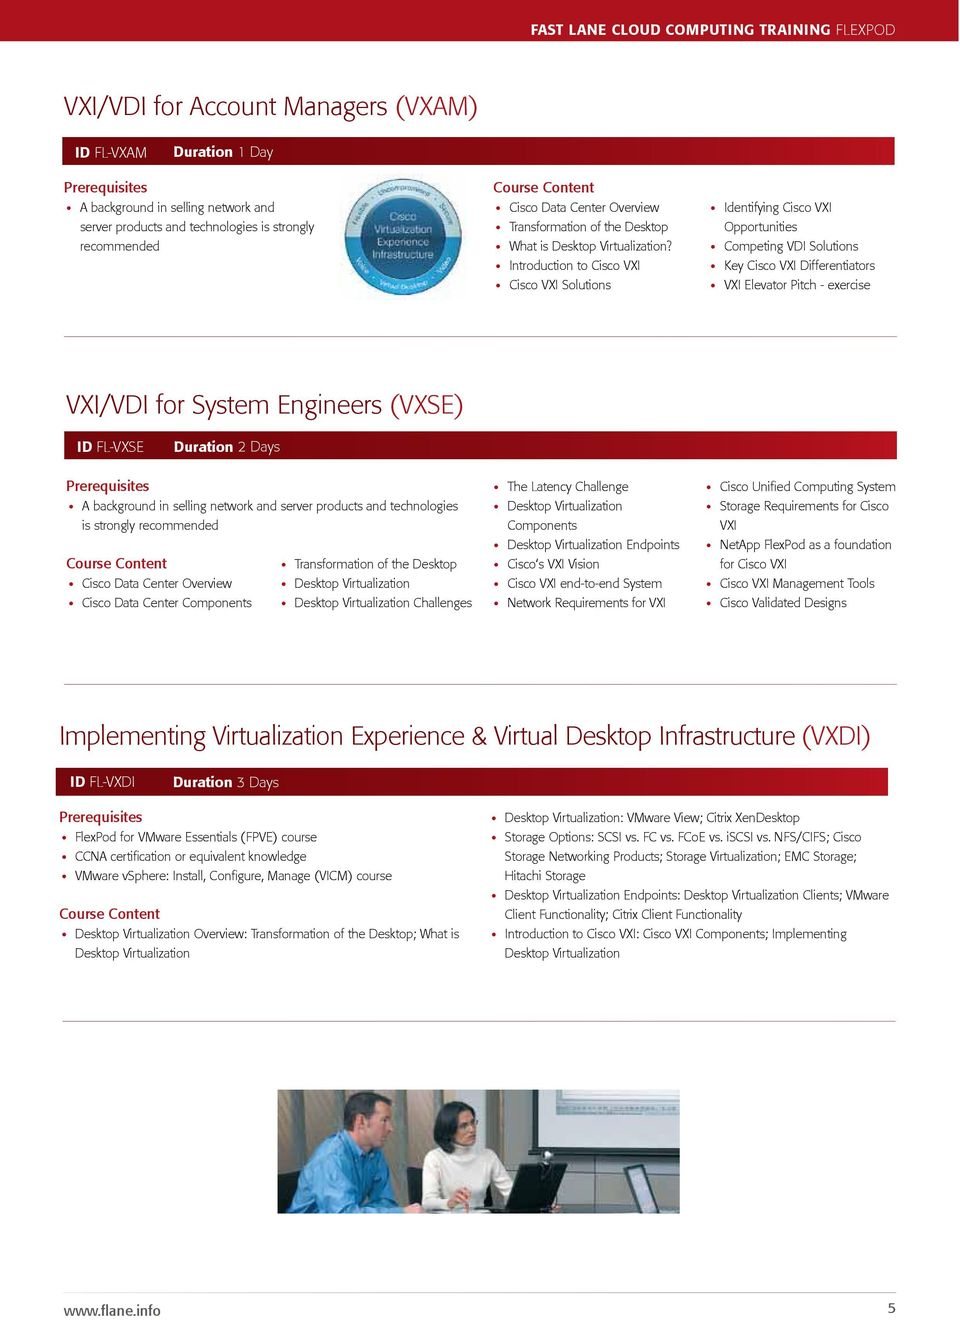 Introduction to Cisco VXI Cisco VXI Solutions Identifying Cisco VXI Opportunities Competing VDI Solutions Key Cisco VXI Differentiators VXI Elevator Pitch - exercise VXI/VDI for System Engineers